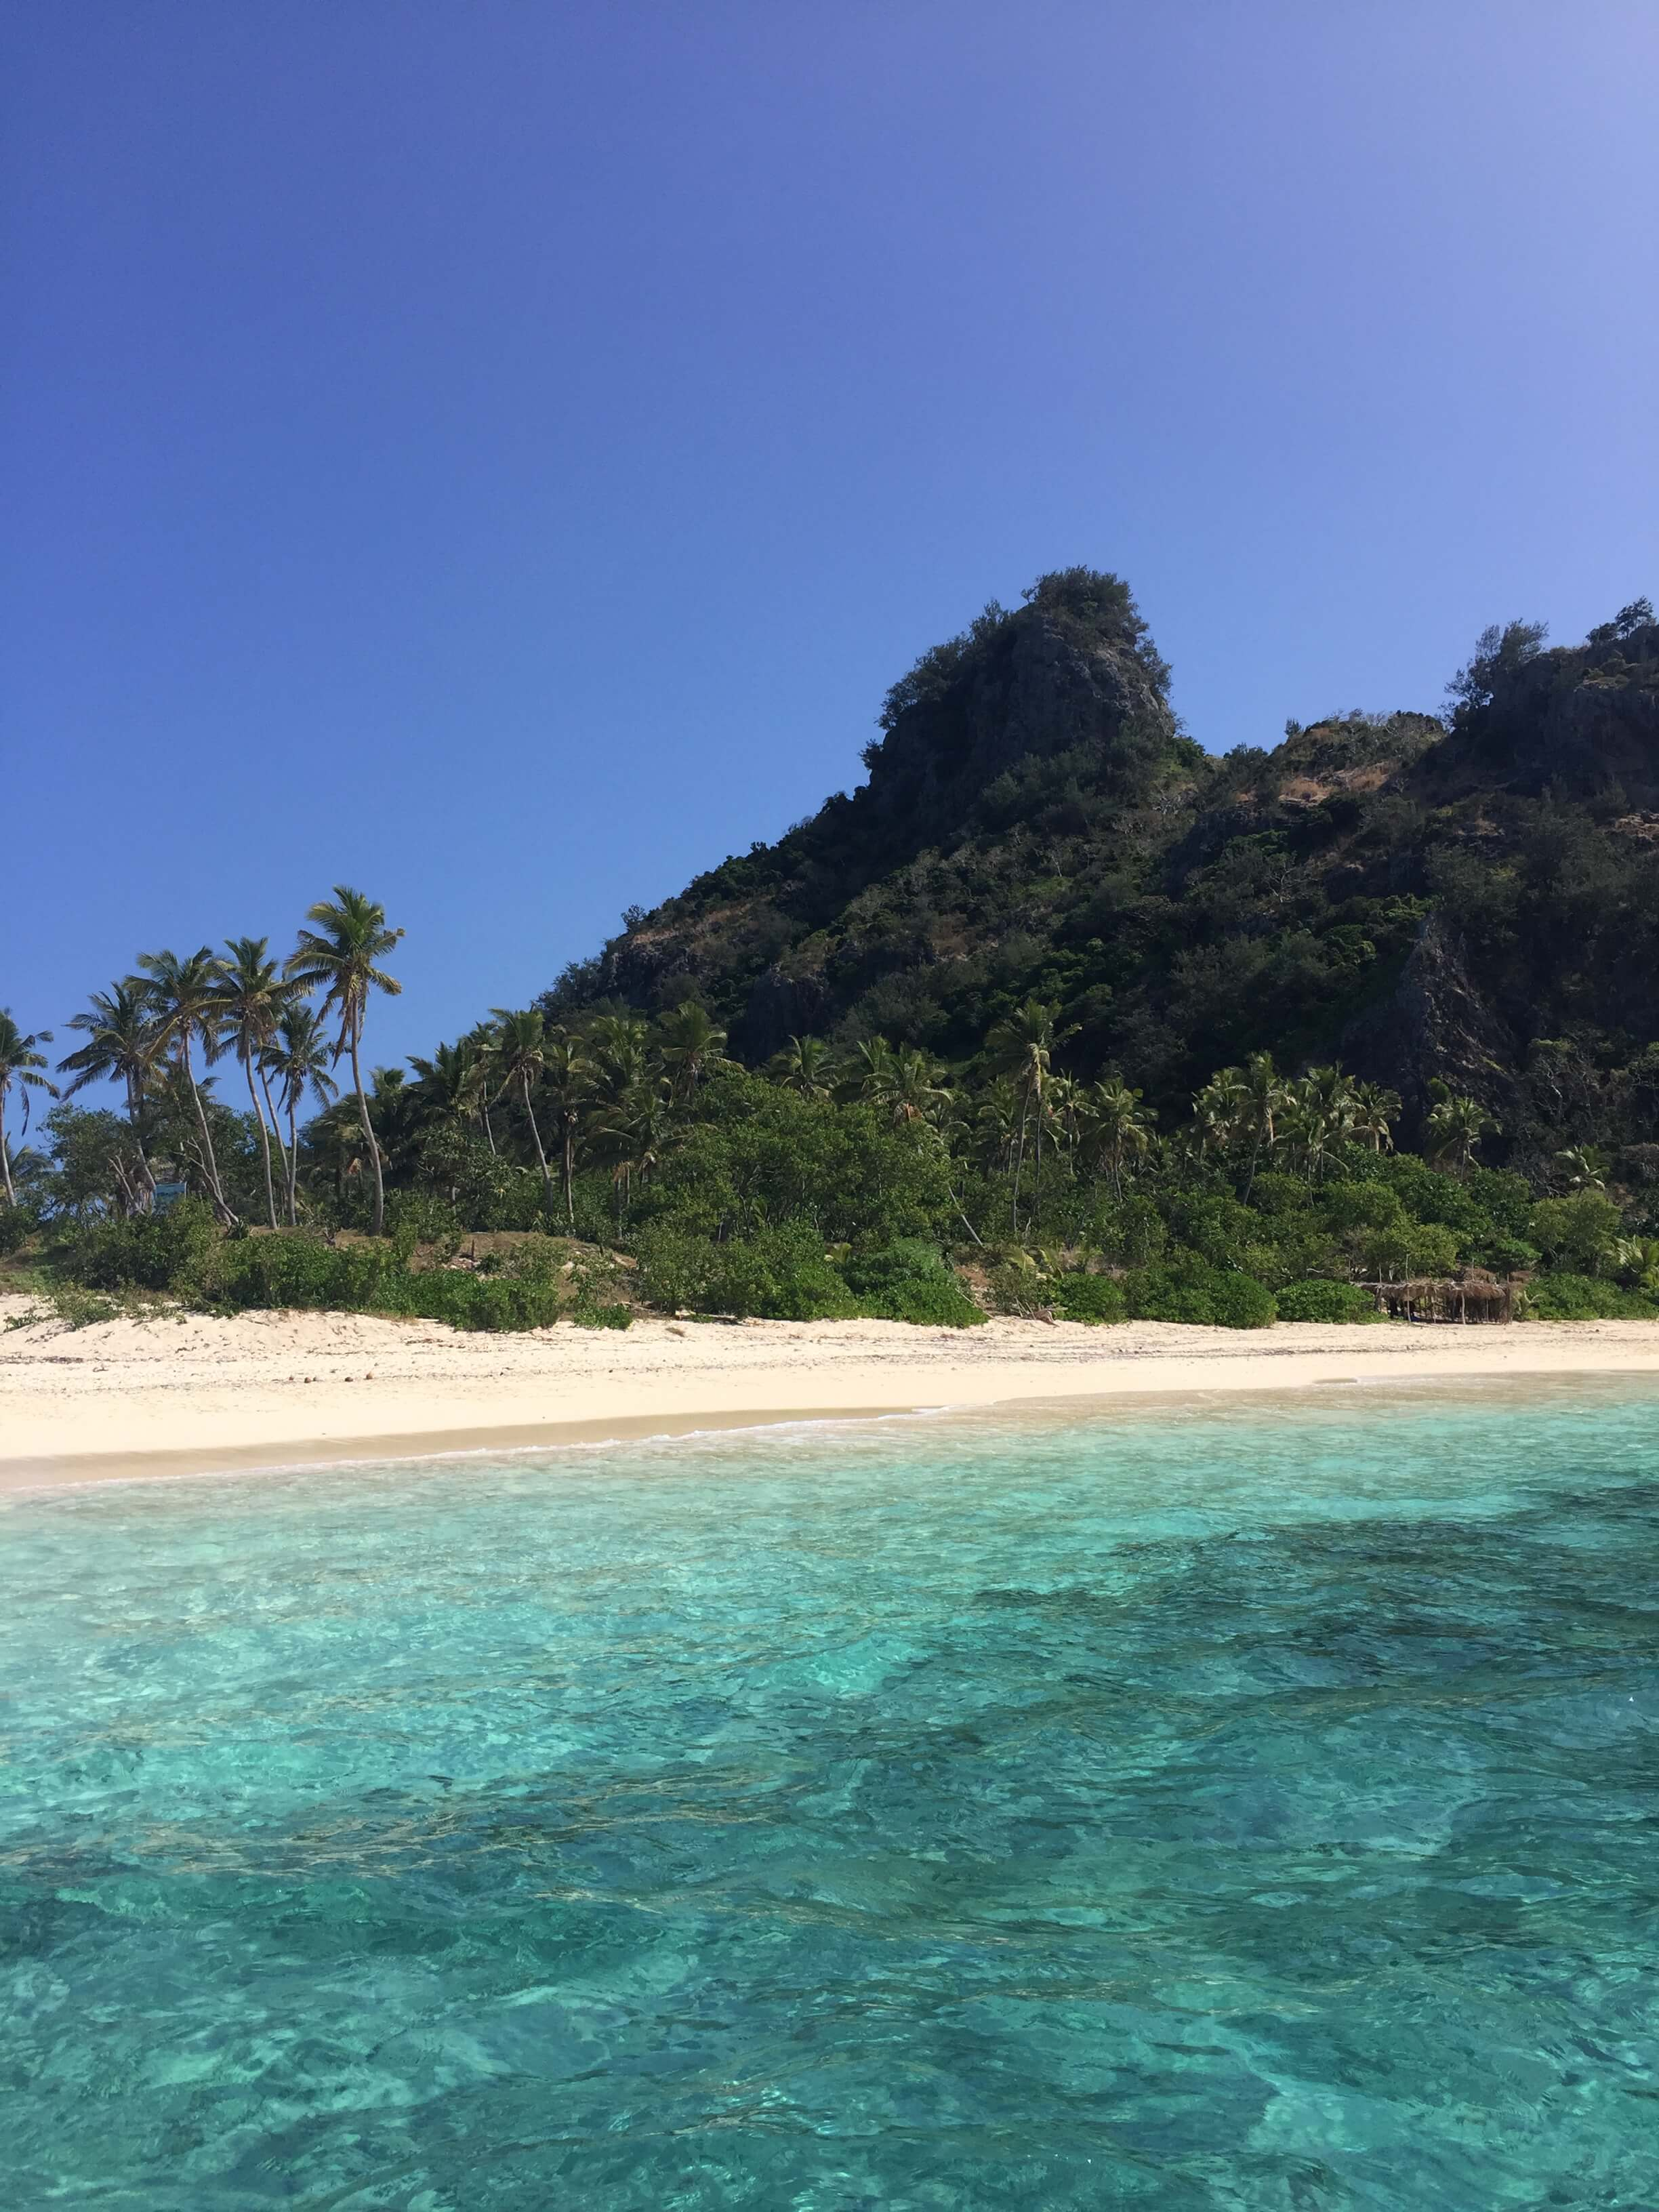 A day trip to the uninhabited Mondriki Island, where the Tom Hanks' movie, Castaway, was filmed.